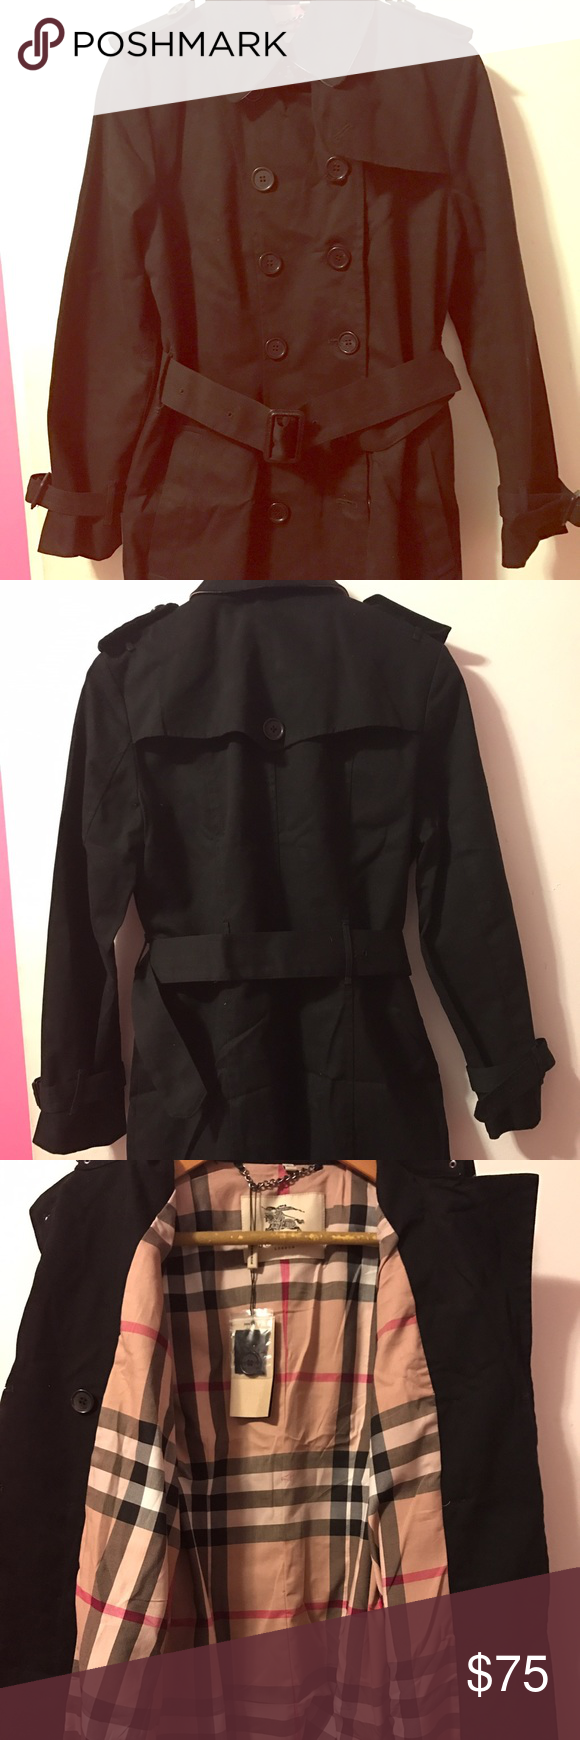 Burberry trench coat w/ detachable belts Selling a brand new replica Burberry trench coat with detachable waist belt and wrist belts. The coat looks great and will fit a 6-10 size perfectly. Color is black and has the Burberry print in the collar. Burberry Jackets & Coats Trench Coats